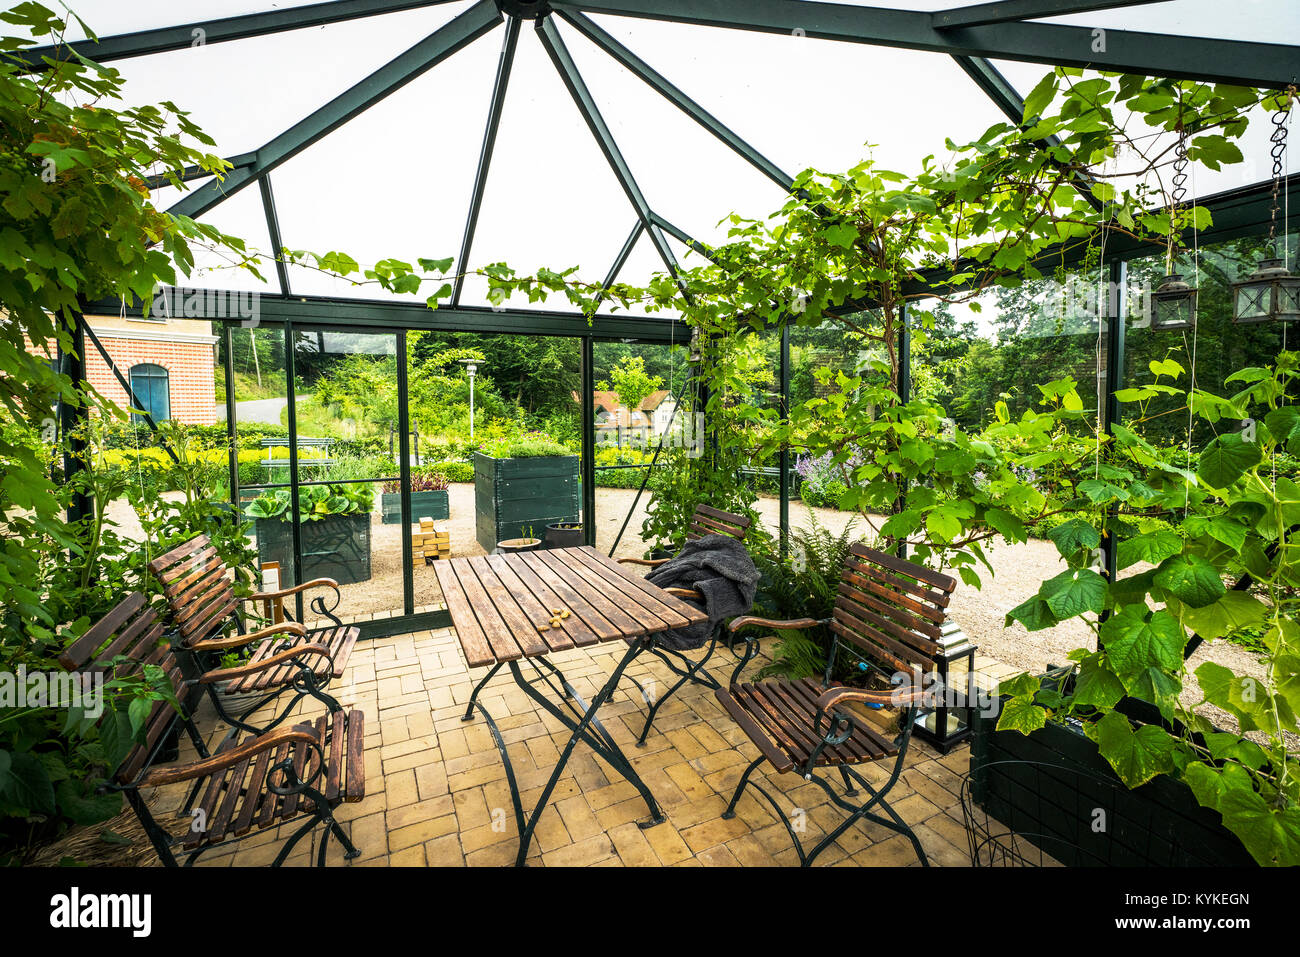 Terrace in a glass house with wooden garden furniture in the summer with green plants - Stock Image